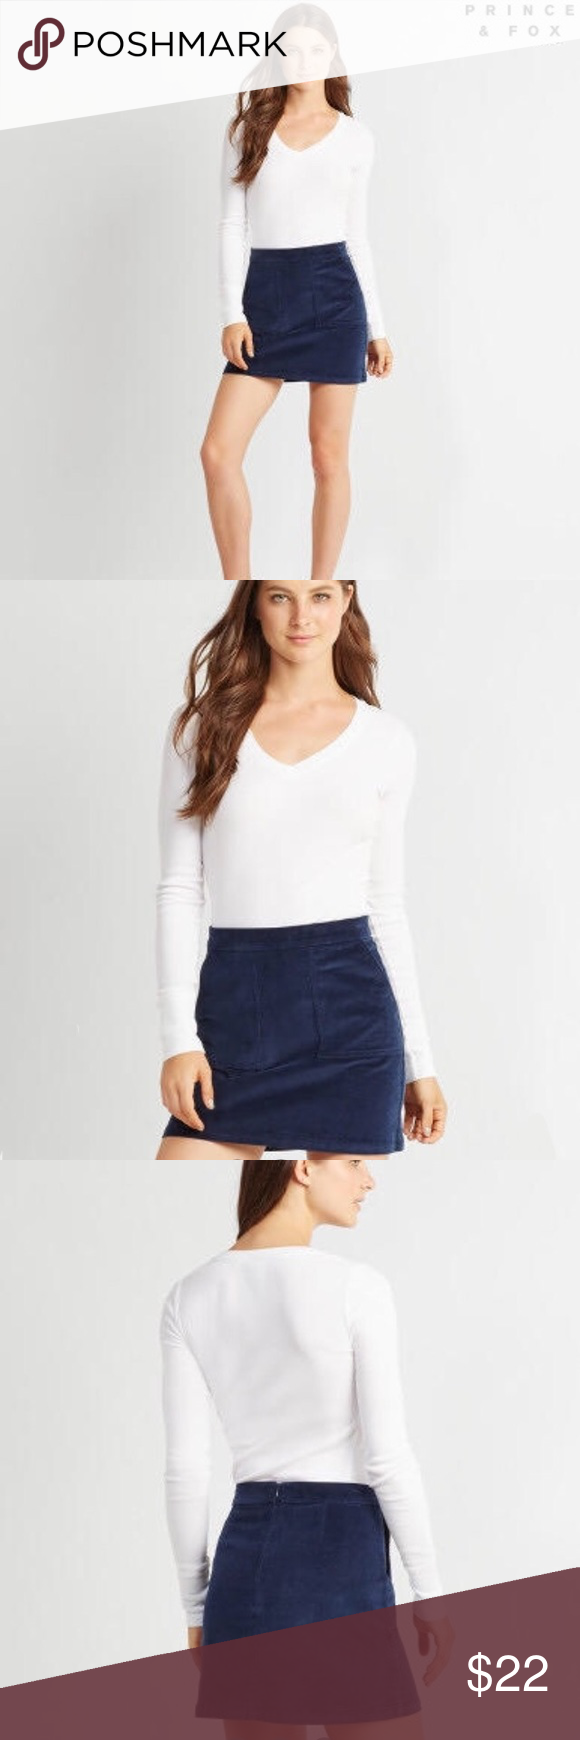 """🆕 Prince & Fox Box Pleat Corduroy Skirt in Navy The Prince & Fox Box Pleat Corduroy Skirt should be a style staple in every gal's cold weather wardrobe. It's designed in a versatile solid hue and features two deep front pockets; patterned tights and a cable knit sweater or cardi will complement it perfectly.  Slim fit. Approx. length: 16"""" Style: 2381. Imported.  98% cotton, 2% spandex. Machine wash/dry.  Model height: 5'9""""   Wear size: 2. Aeropostale Skirts"""